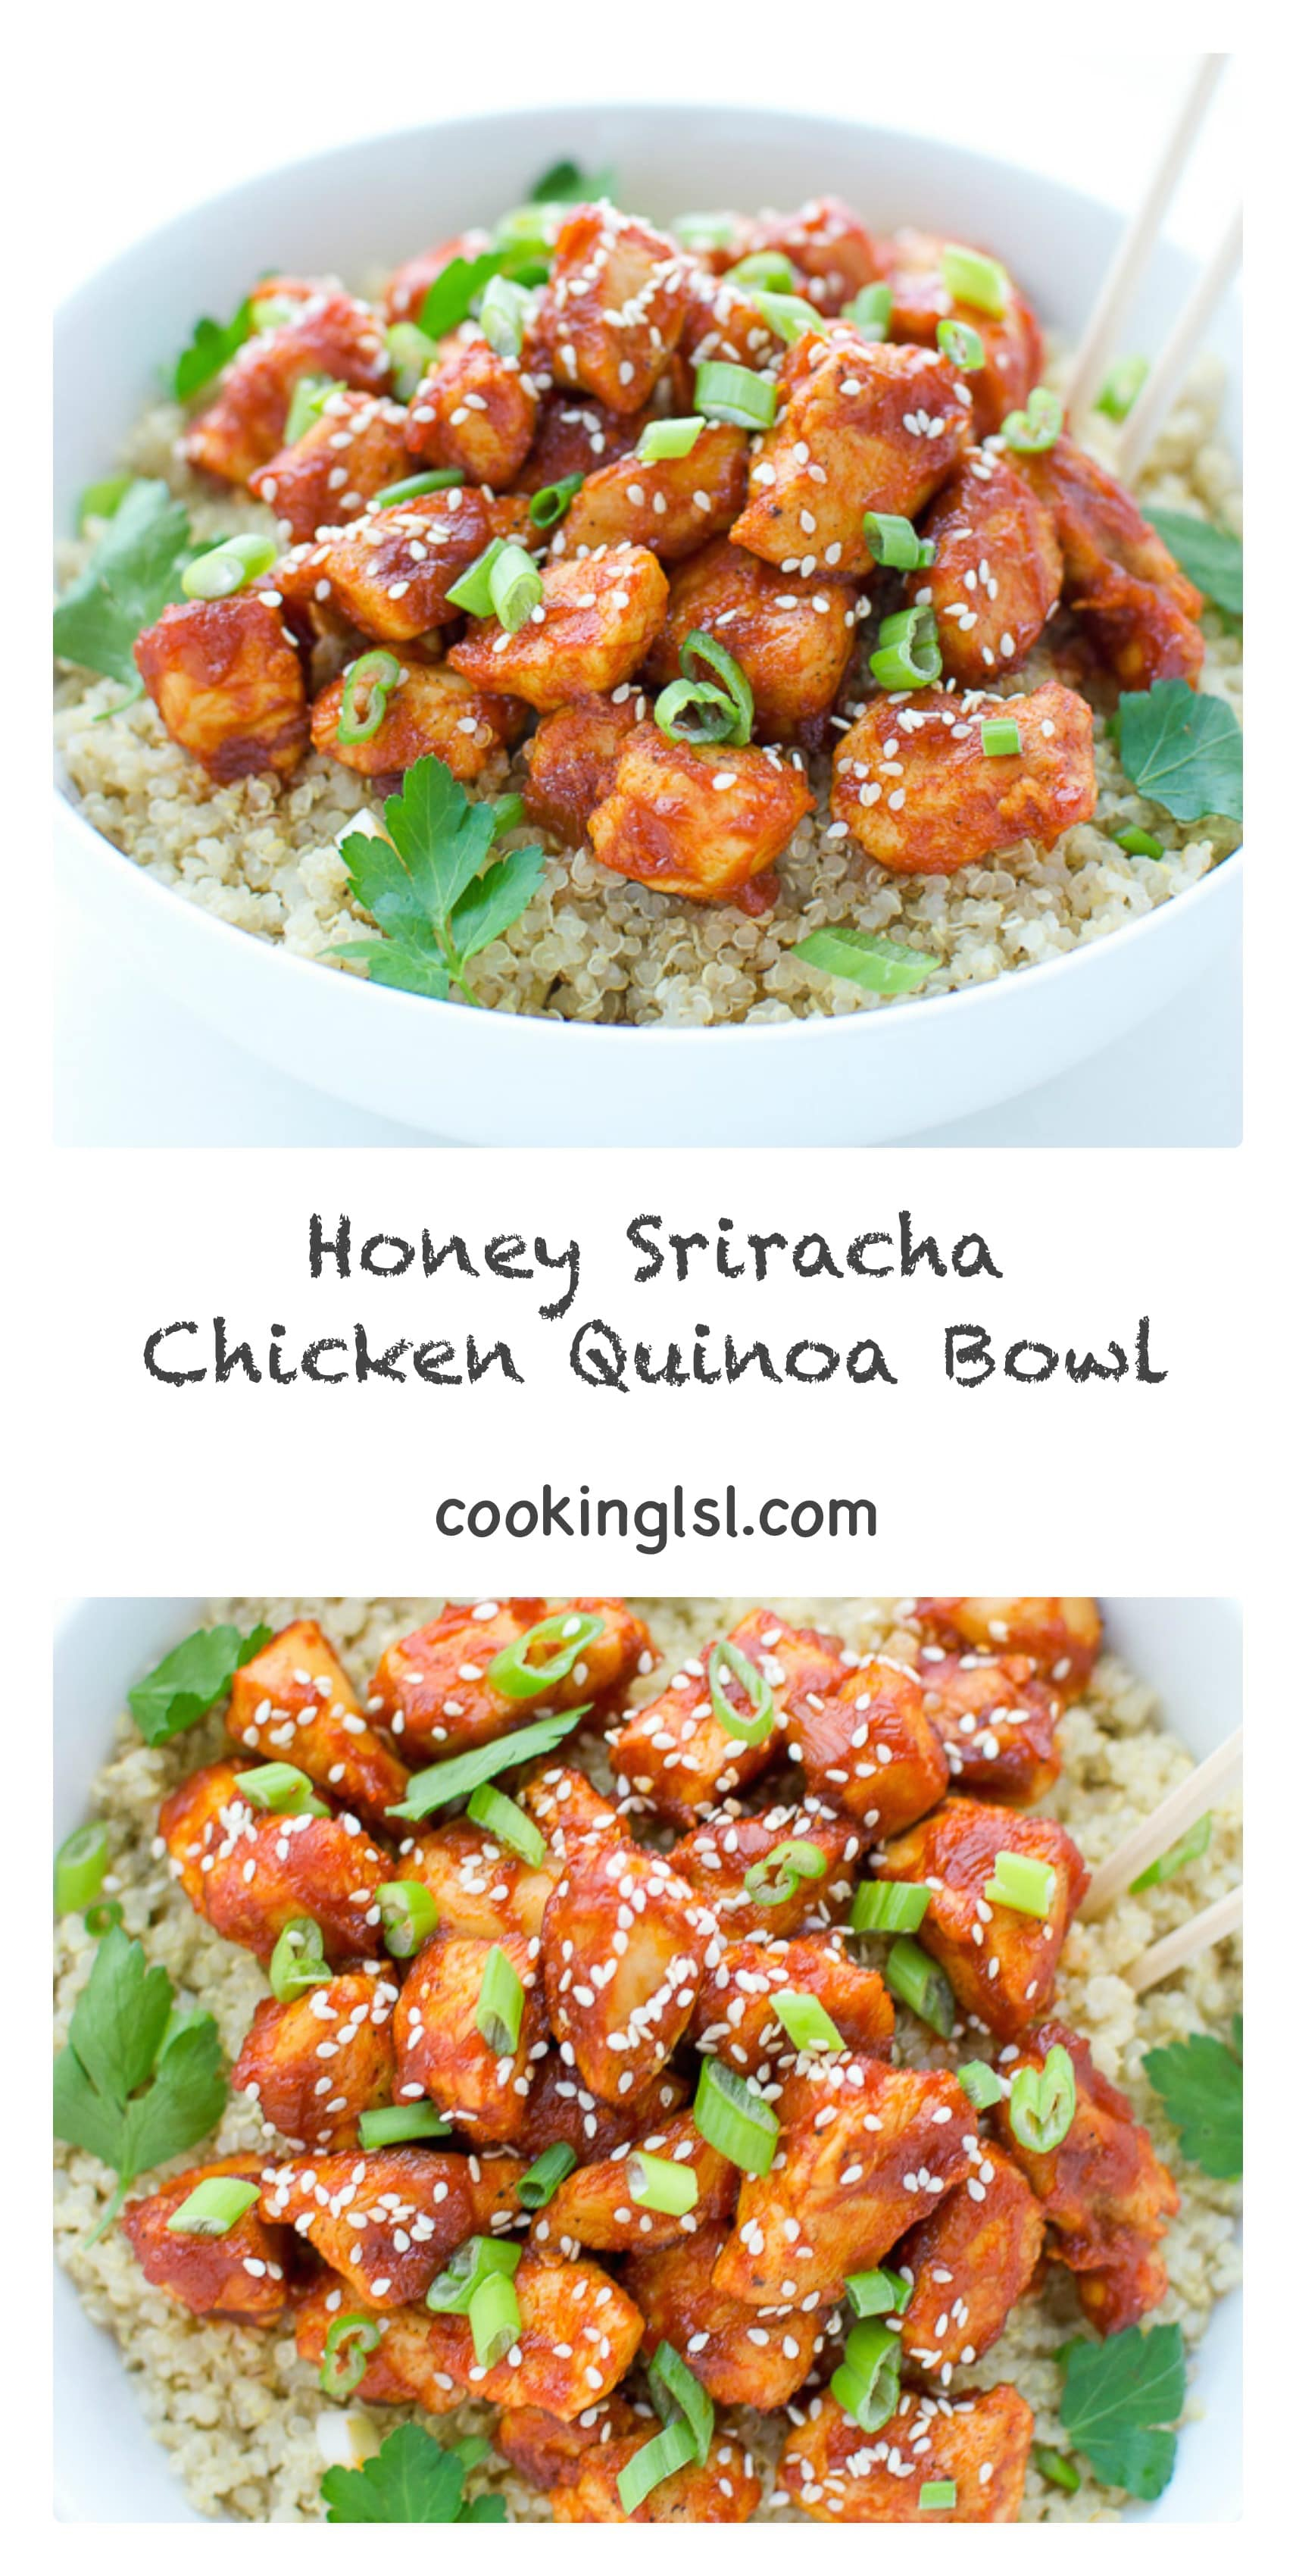 Honey Sriracha Chicken Quinoa Bowl